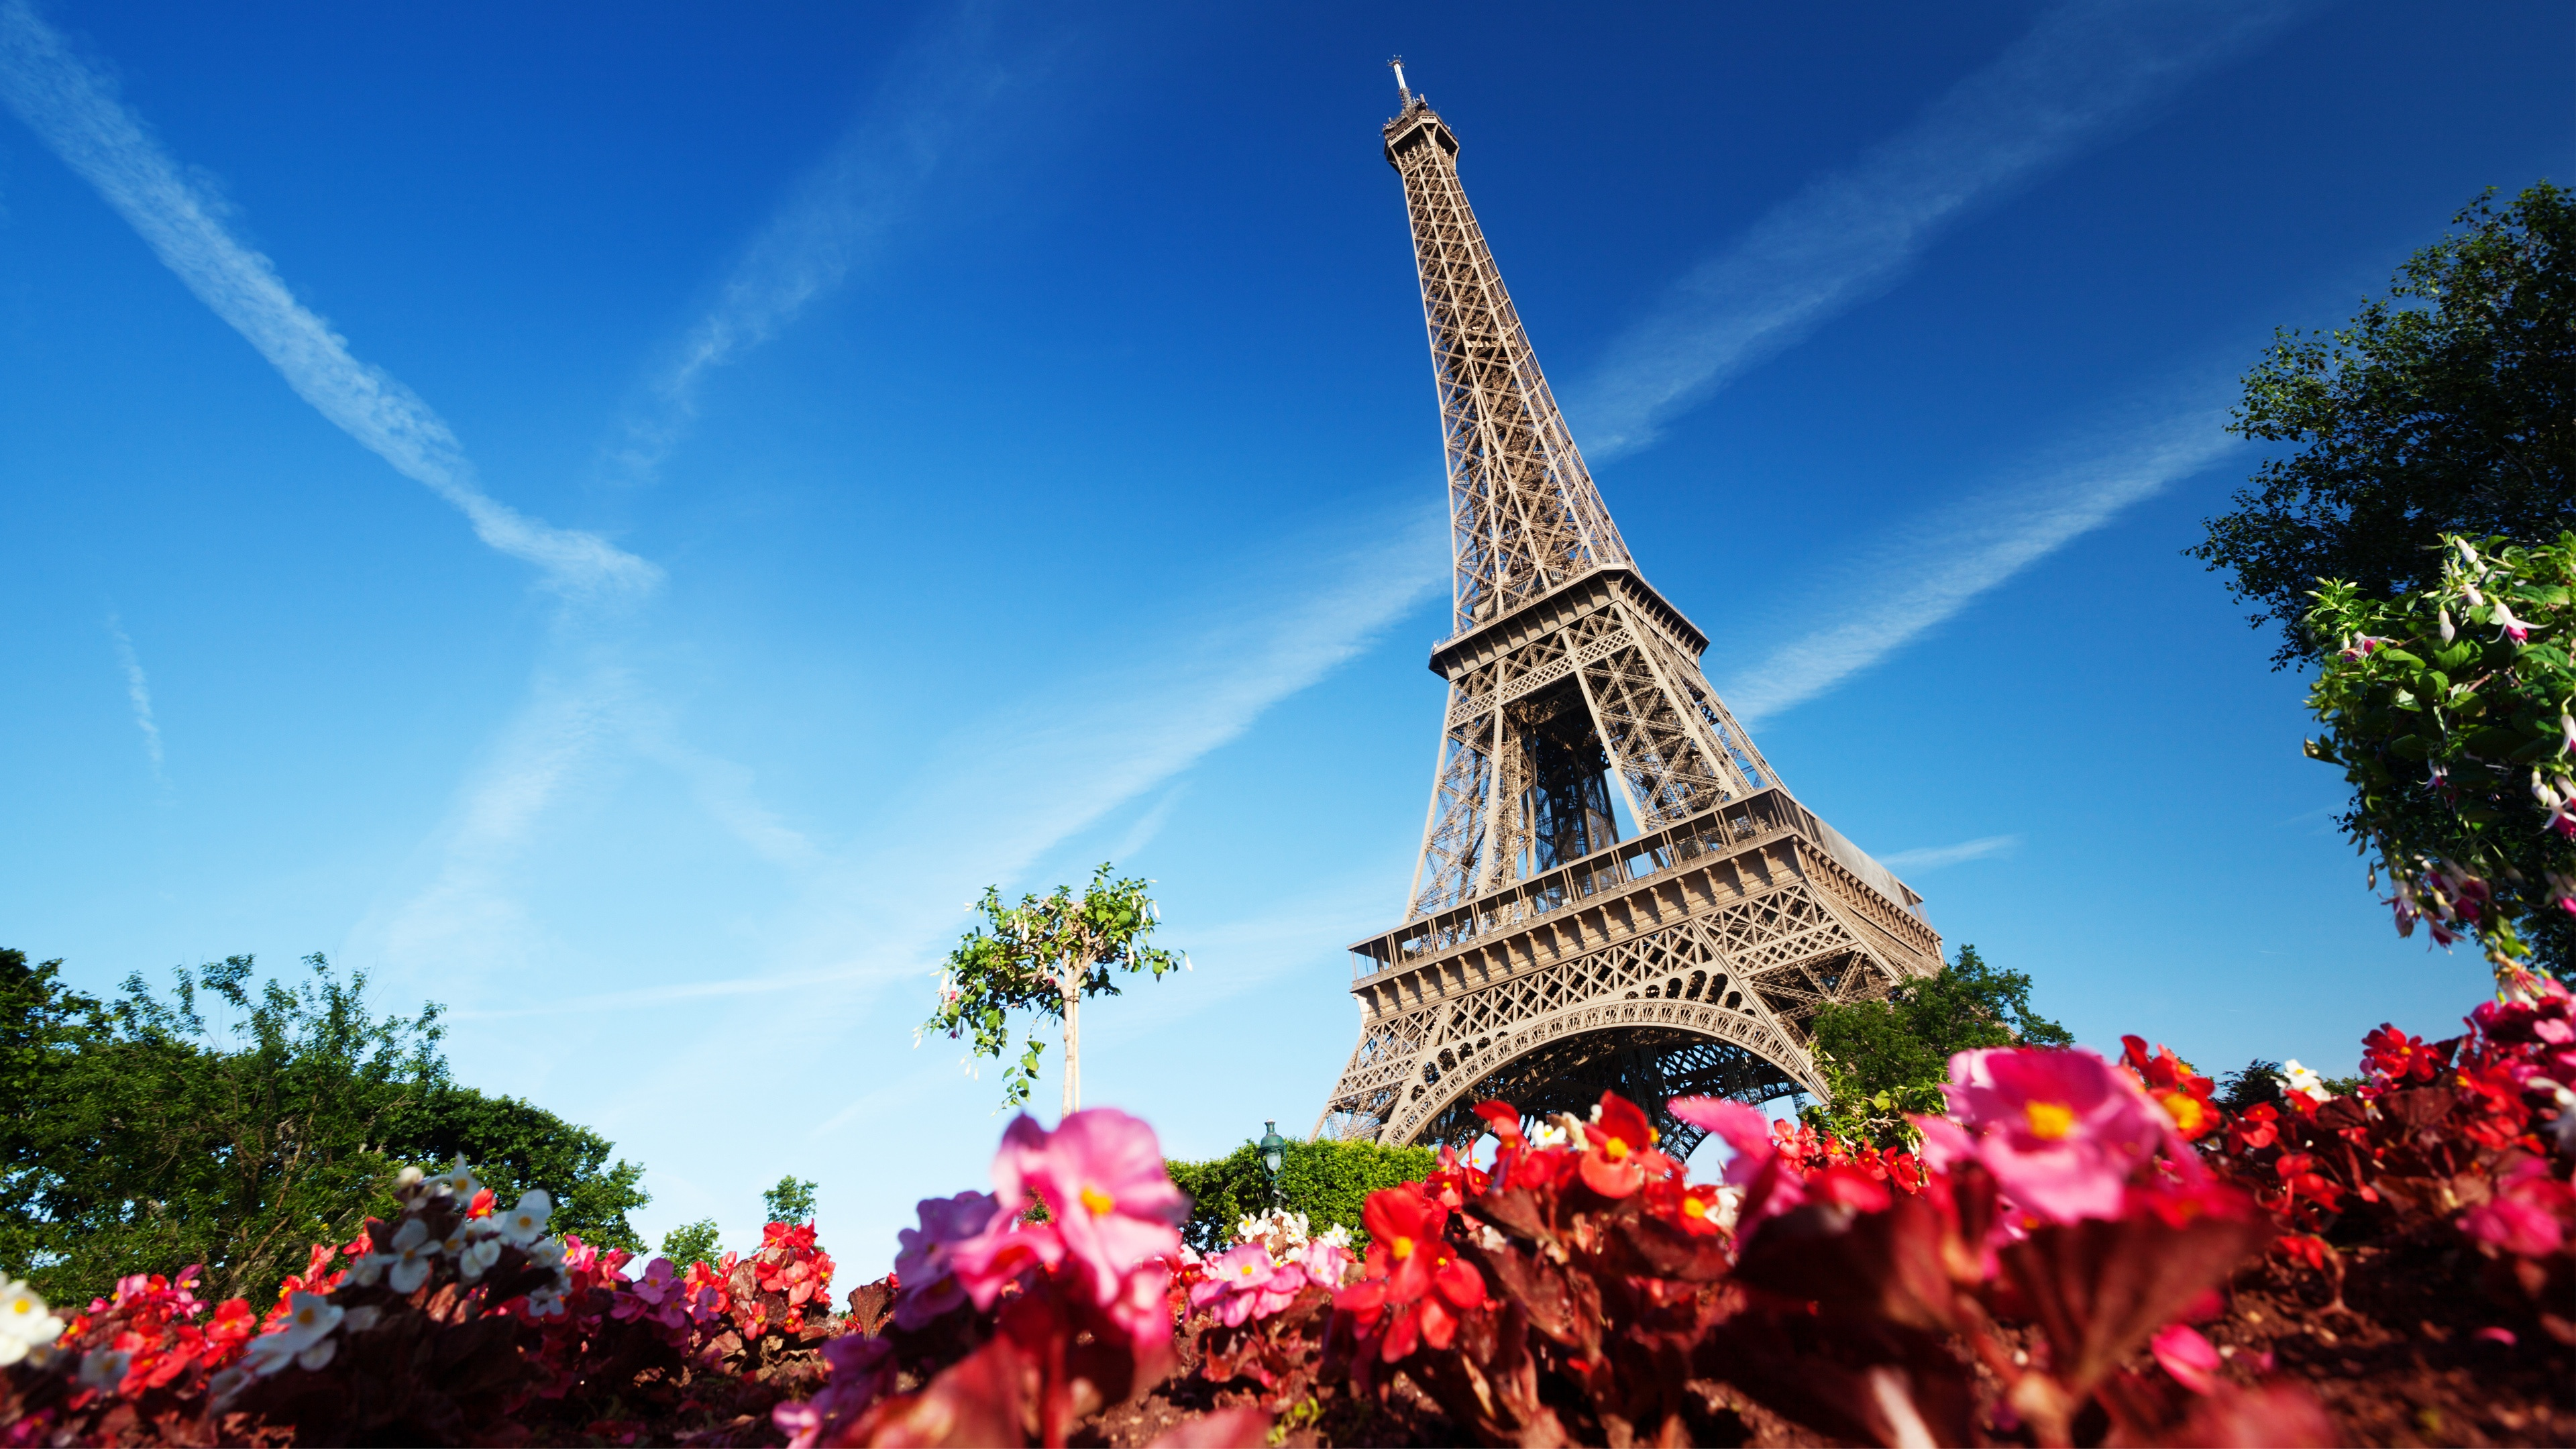 Eiffel Tower Paris France Wallpapers In Jpg Format For Free Download